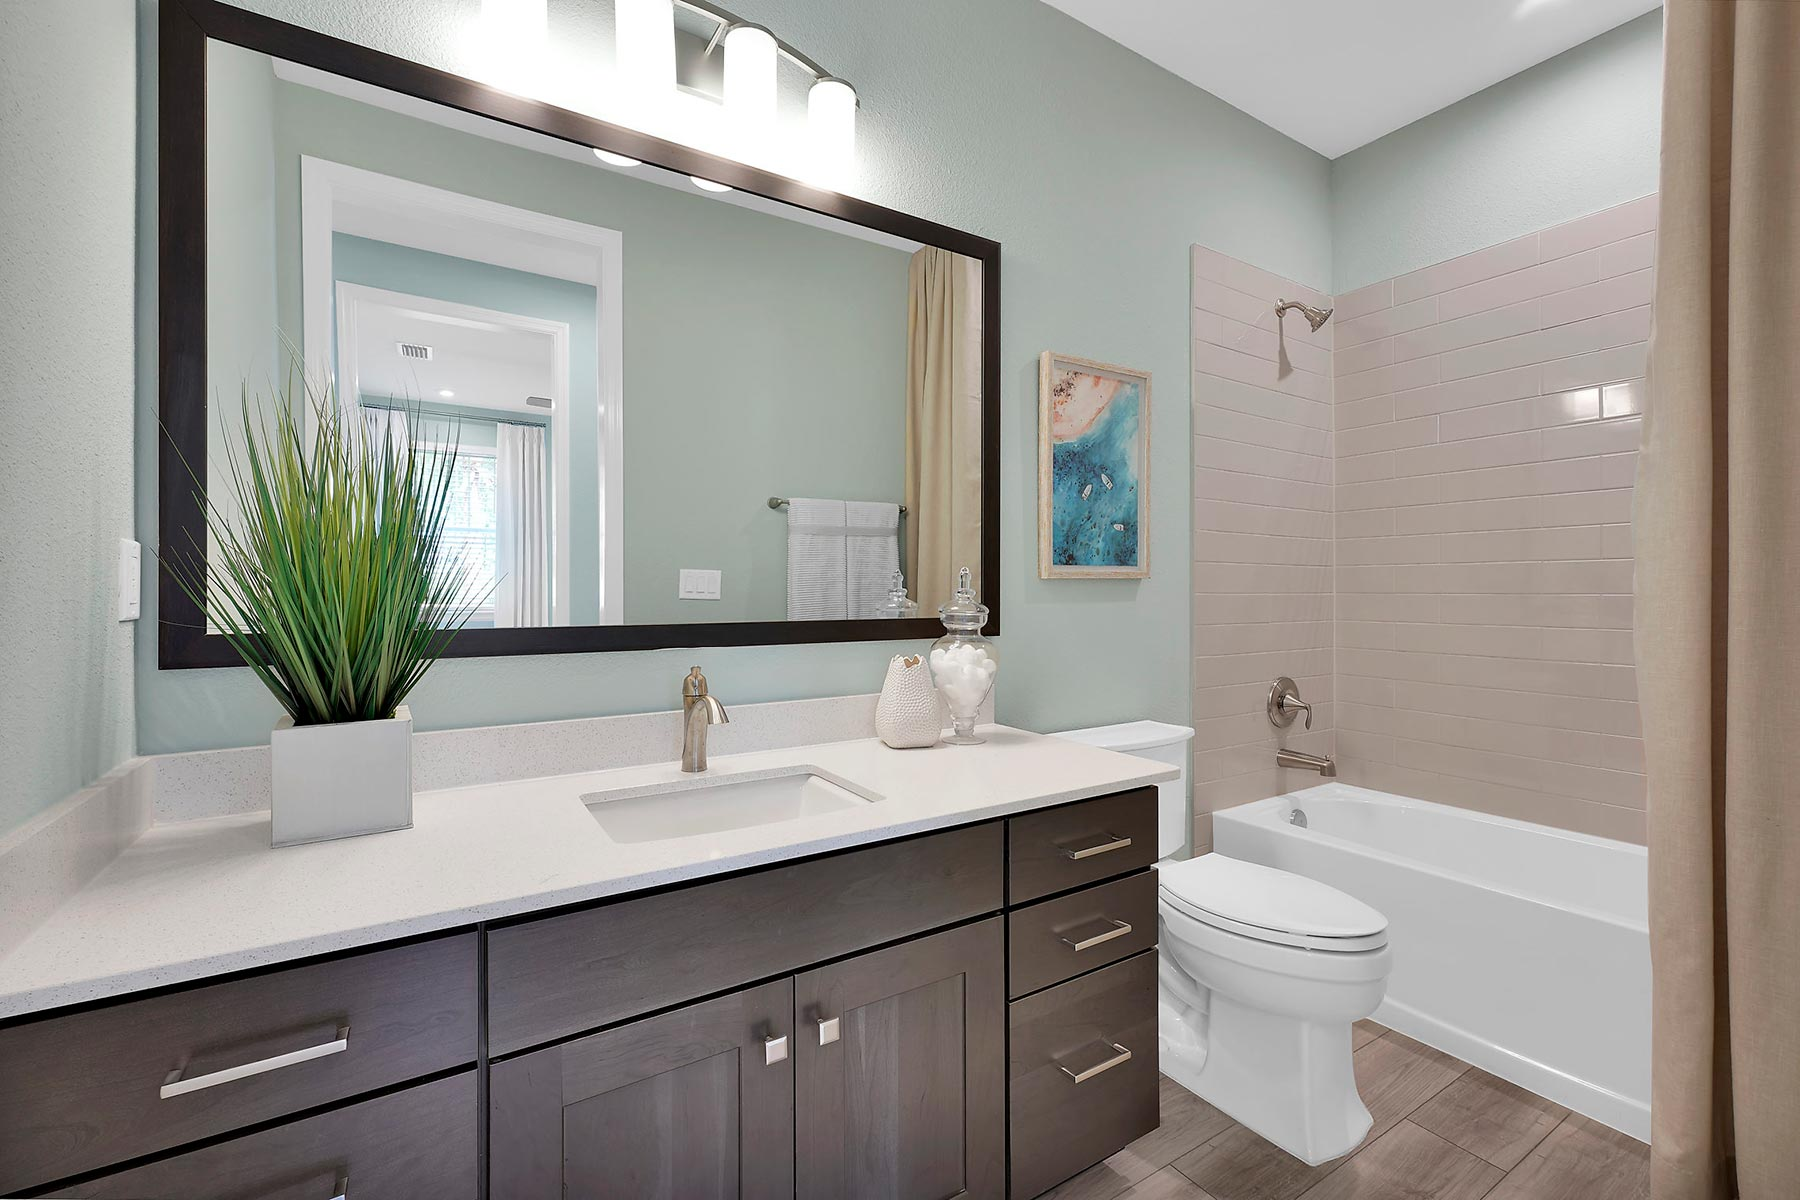 Kai Plan Bath at Pablo Cove in Jacksonville Florida by Mattamy Homes